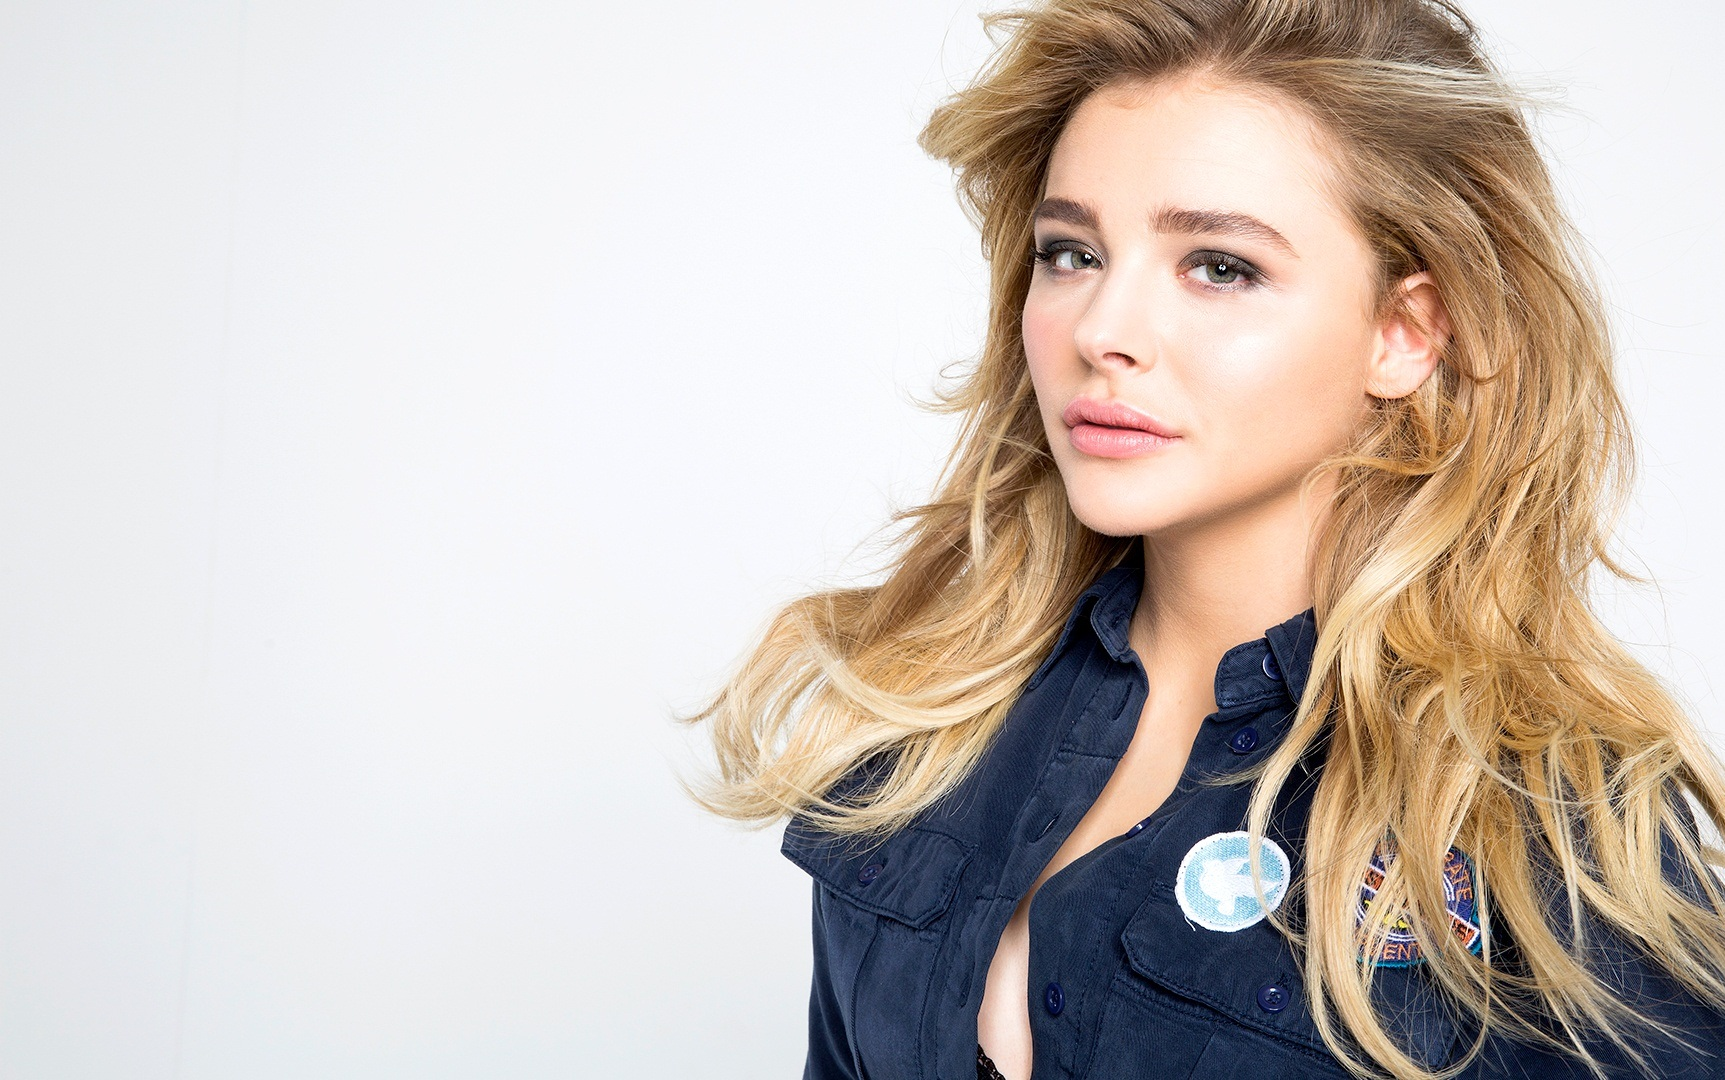 American Actress Chloë Grace Moretz Wiki, Bio, Age & Net Worth